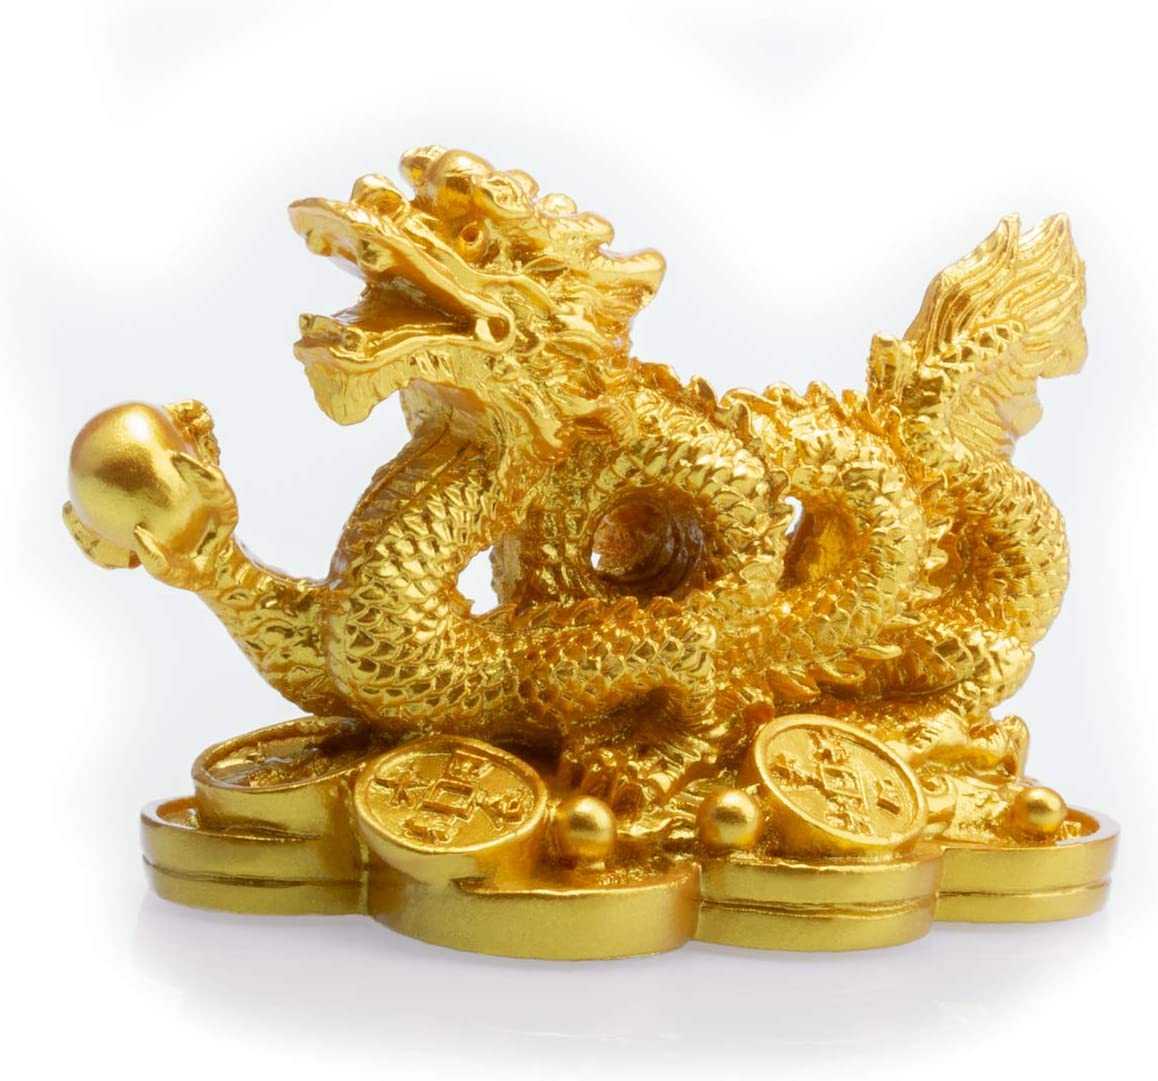 Feng Shui Resin Dragon Loong on Ancient Coins Statue Symbol of Prosperity Home Office Decor(Gold)